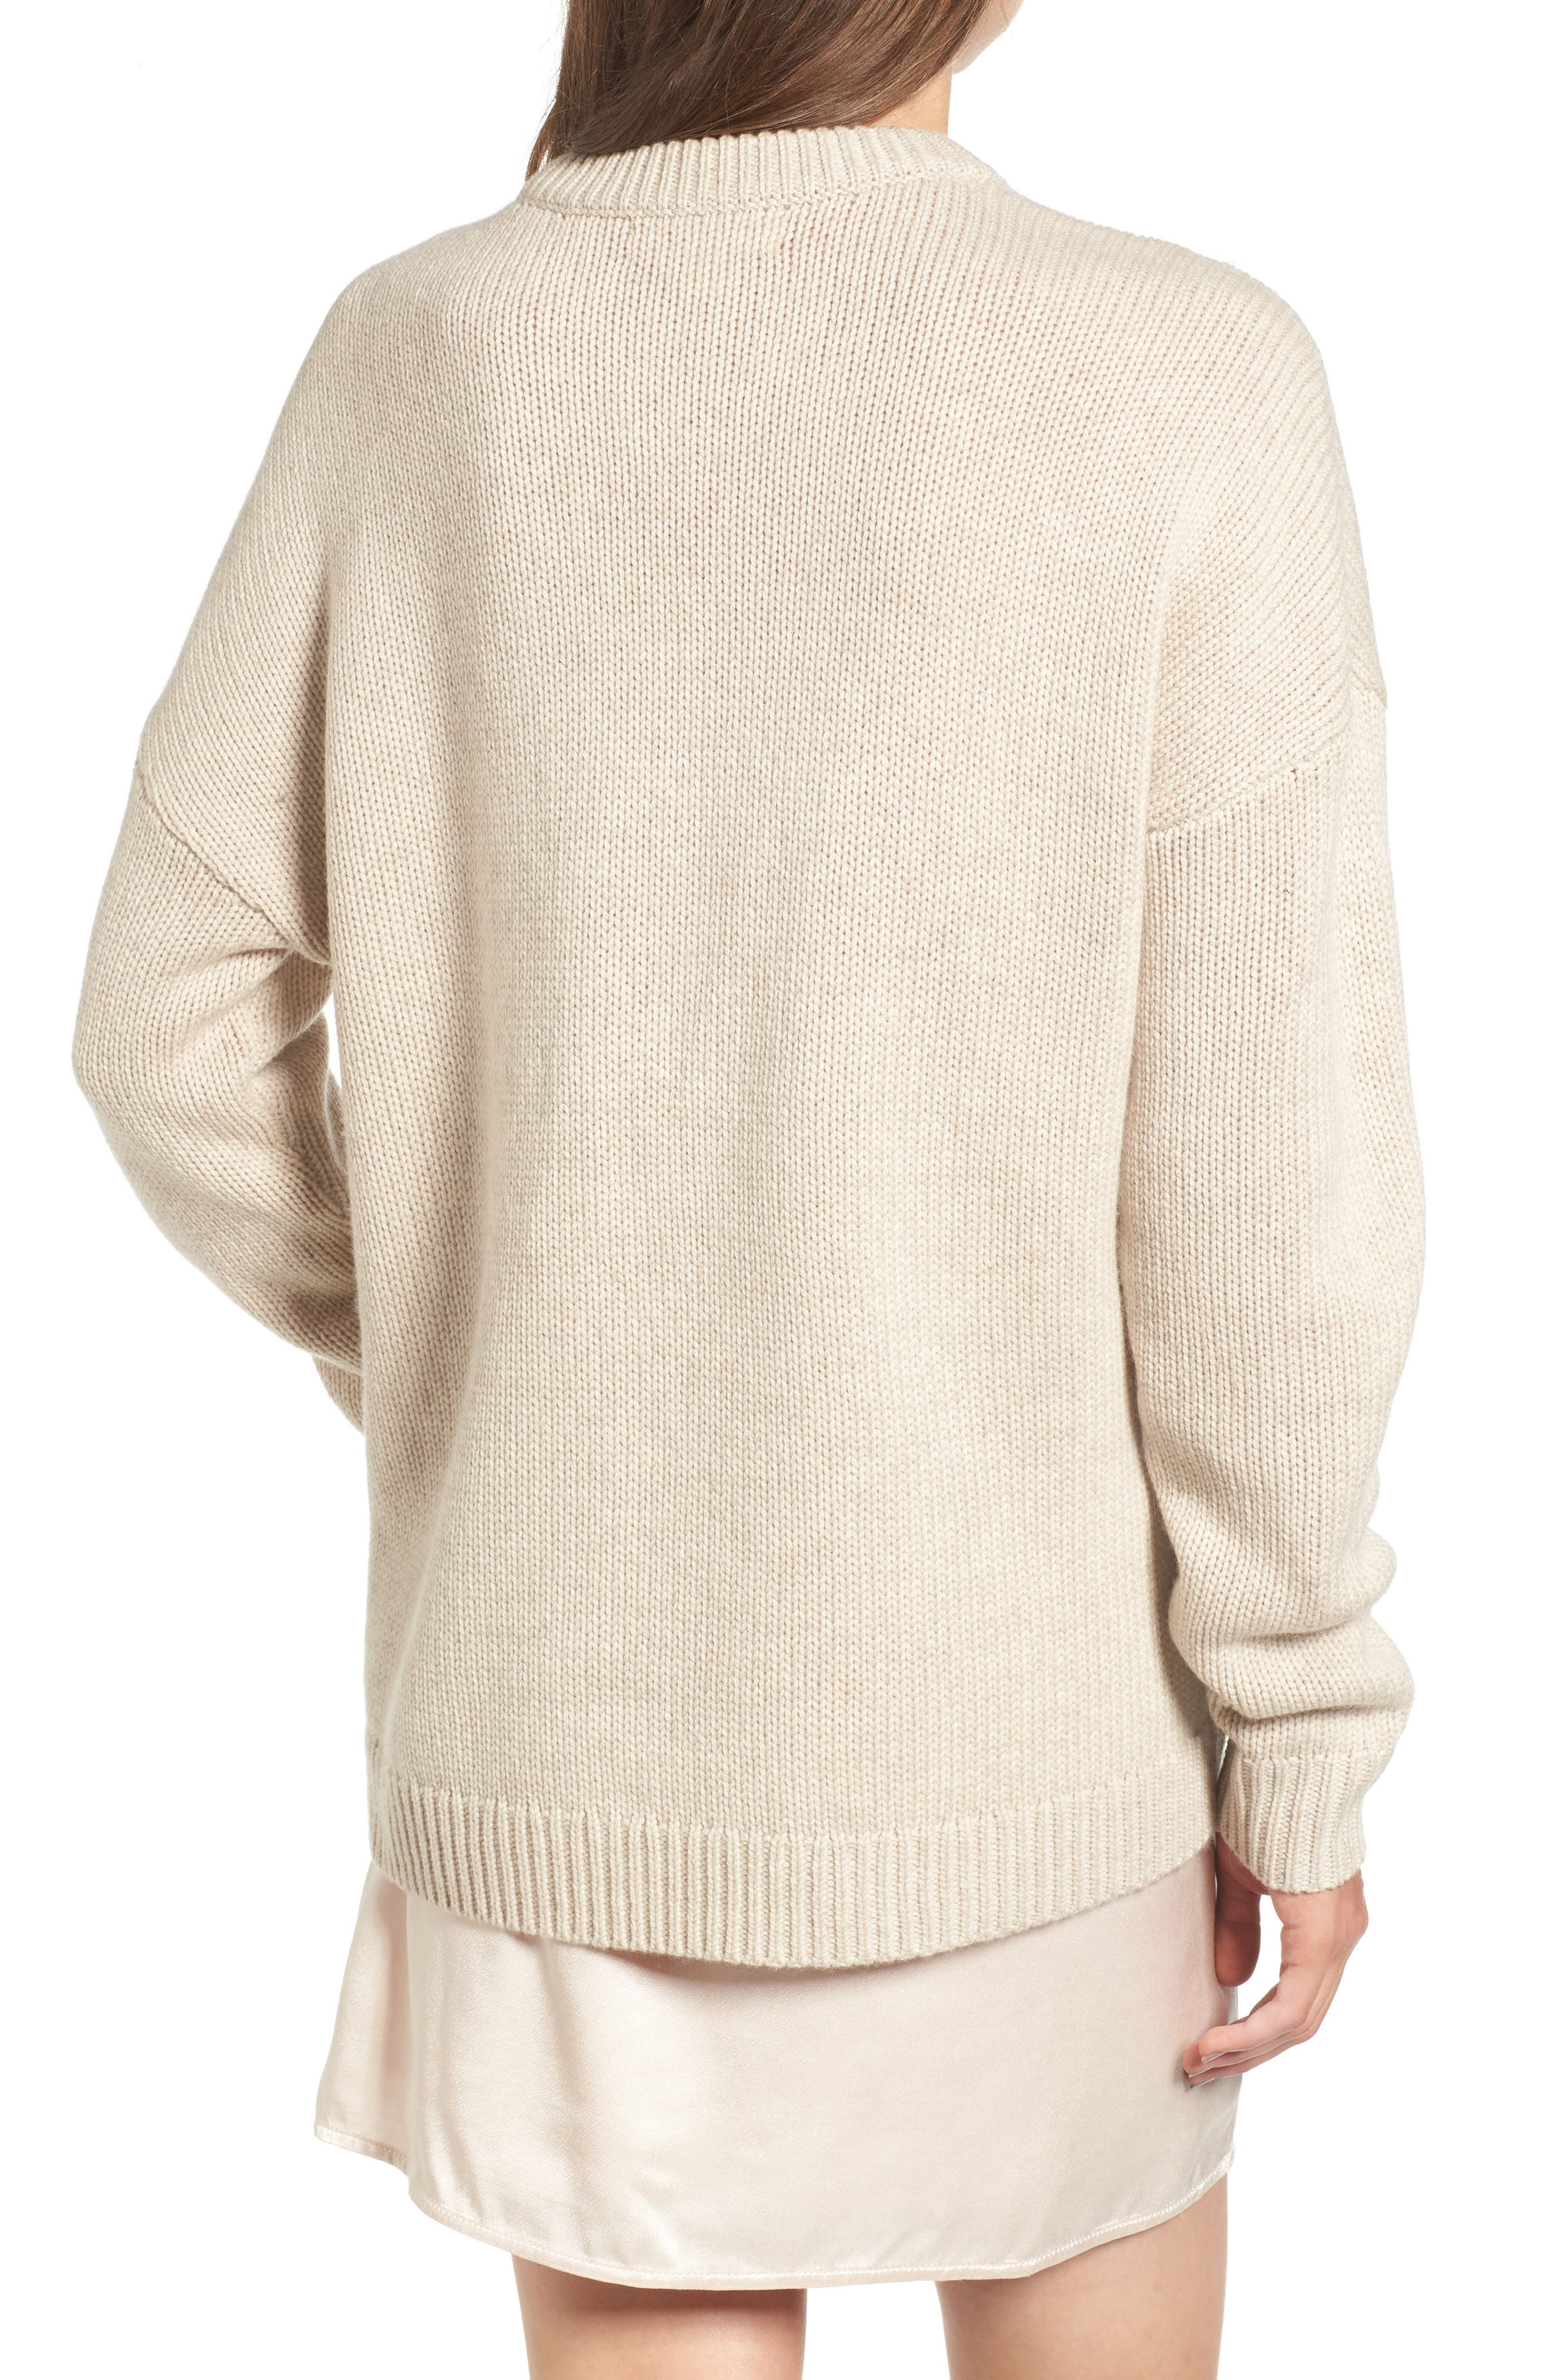 x Something Navy Crewneck Sweater,                             Alternate thumbnail 2, color,                             Beige Oatmeal Medium Heather